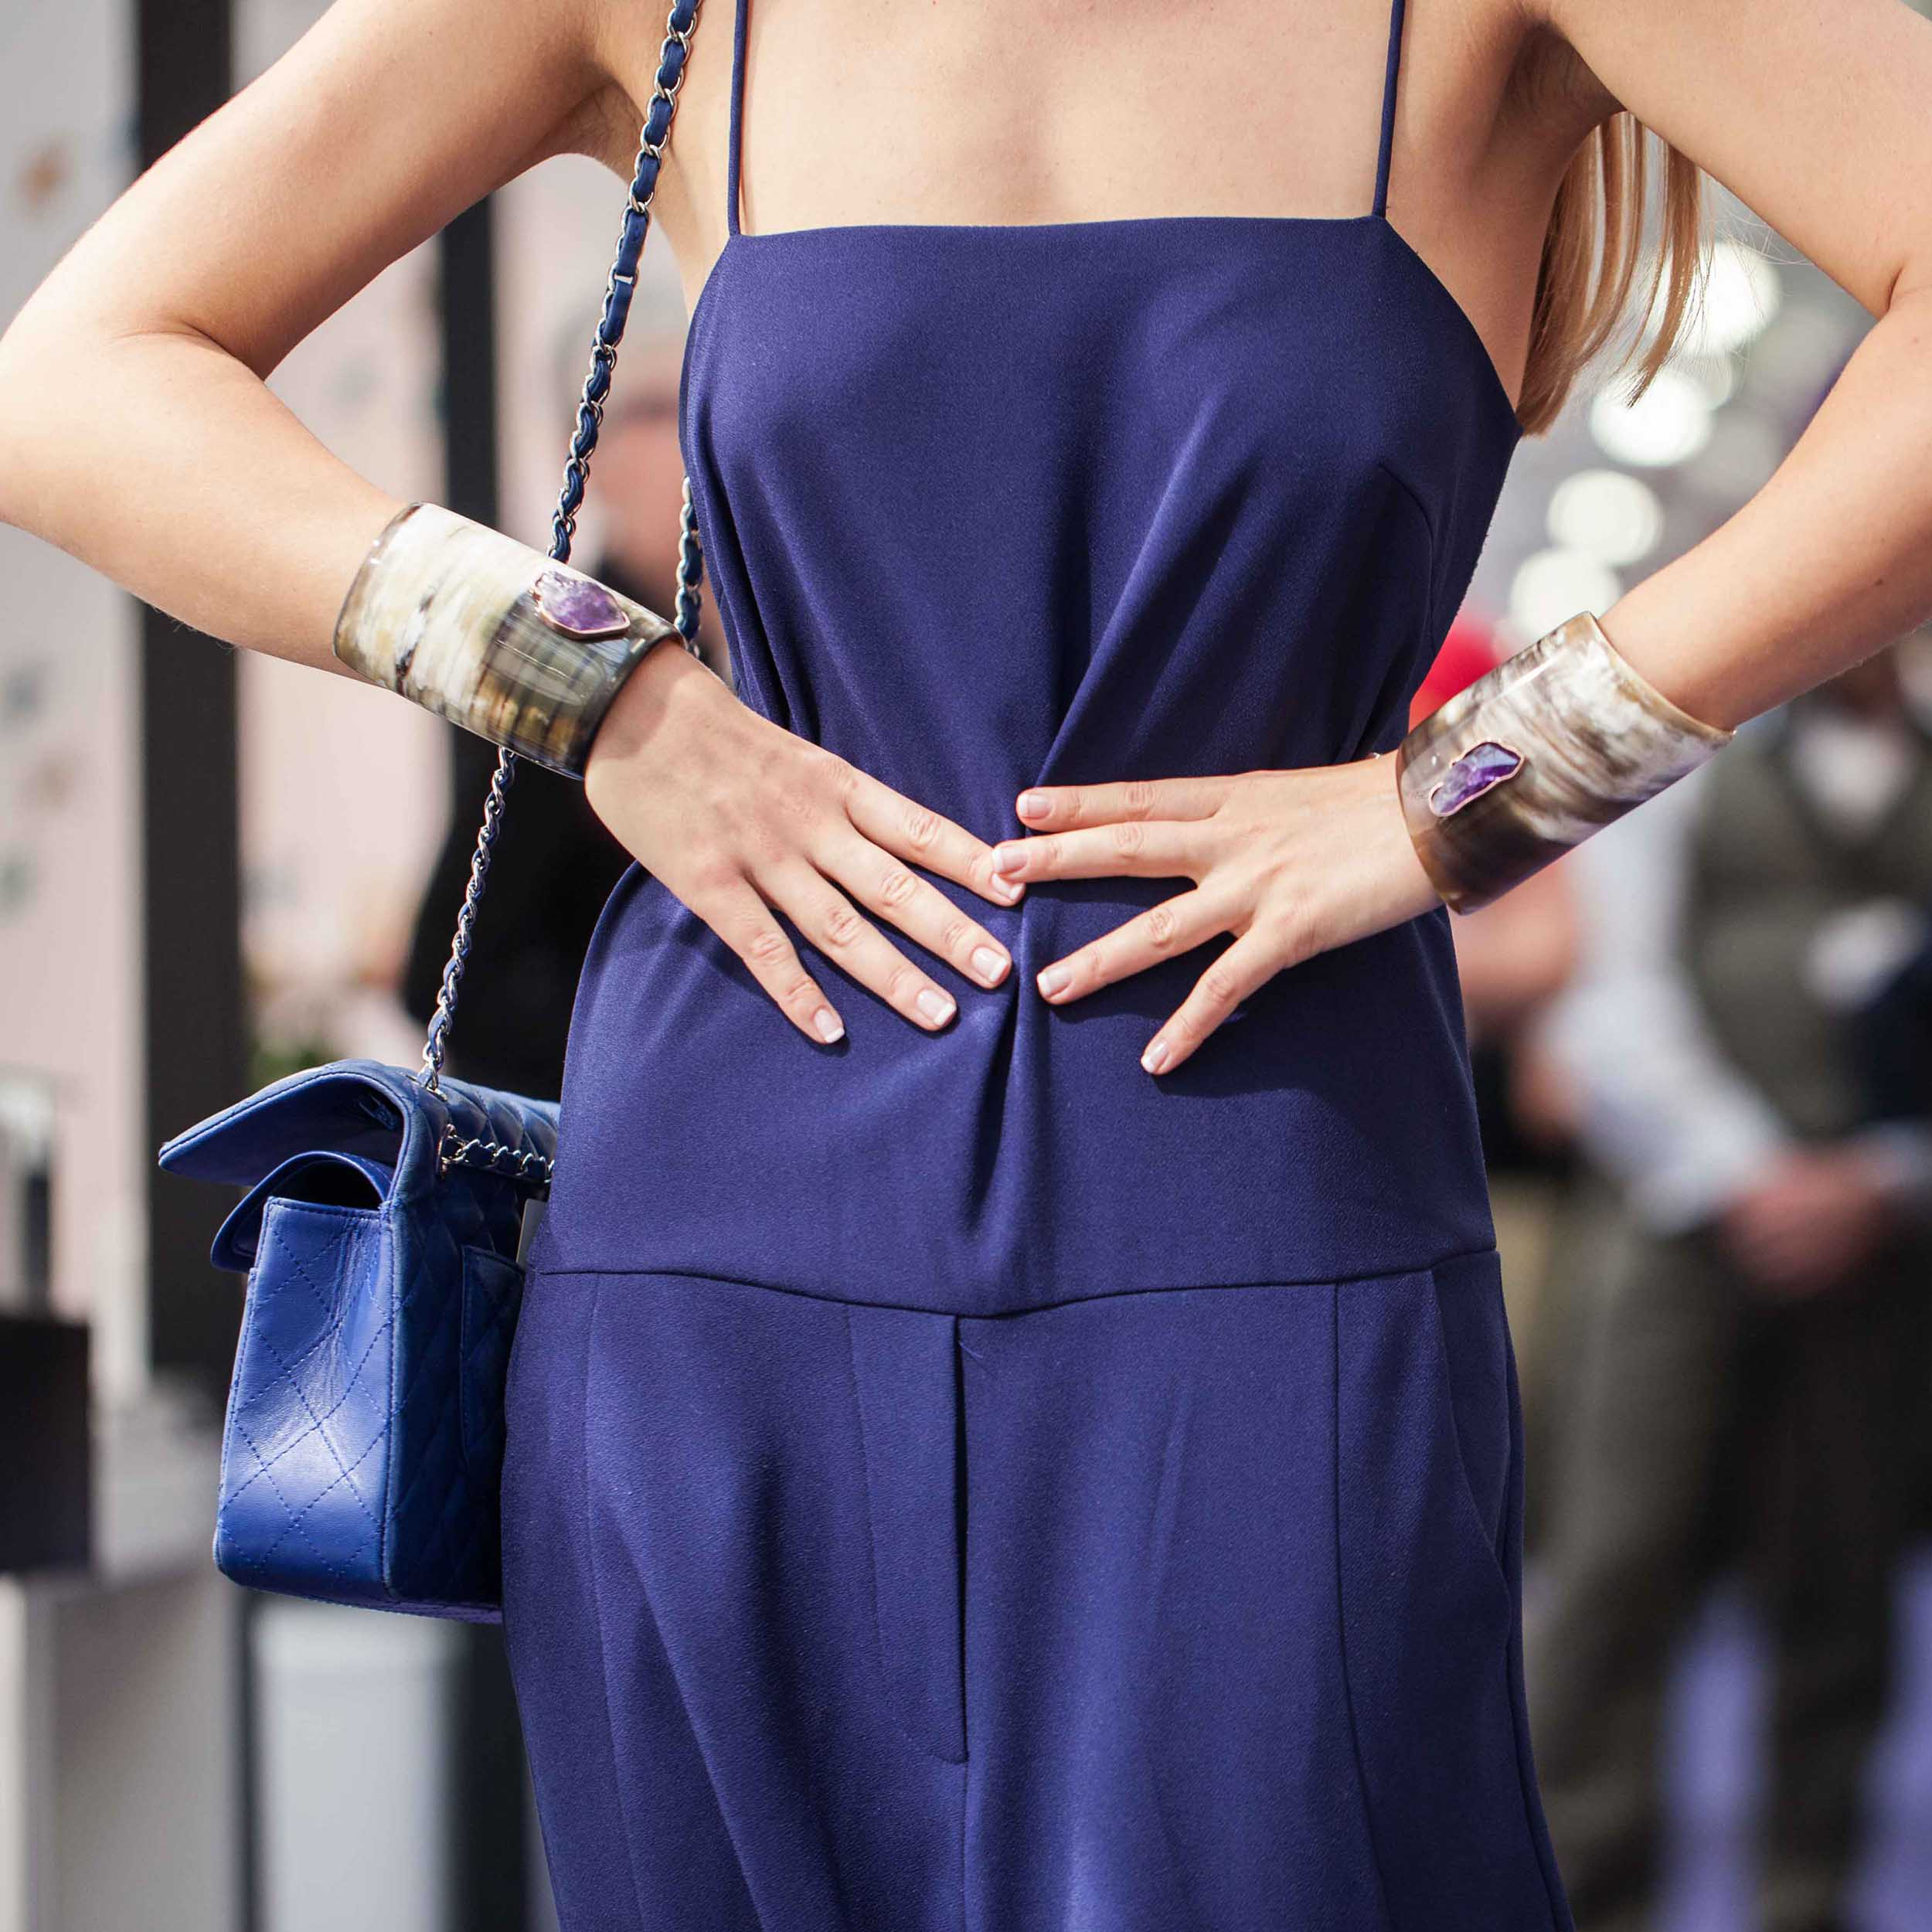 THE JEWELLERY BRANDS YOU NEED TO KNOW BEFORE YOUR GIRLFRIENDS DO